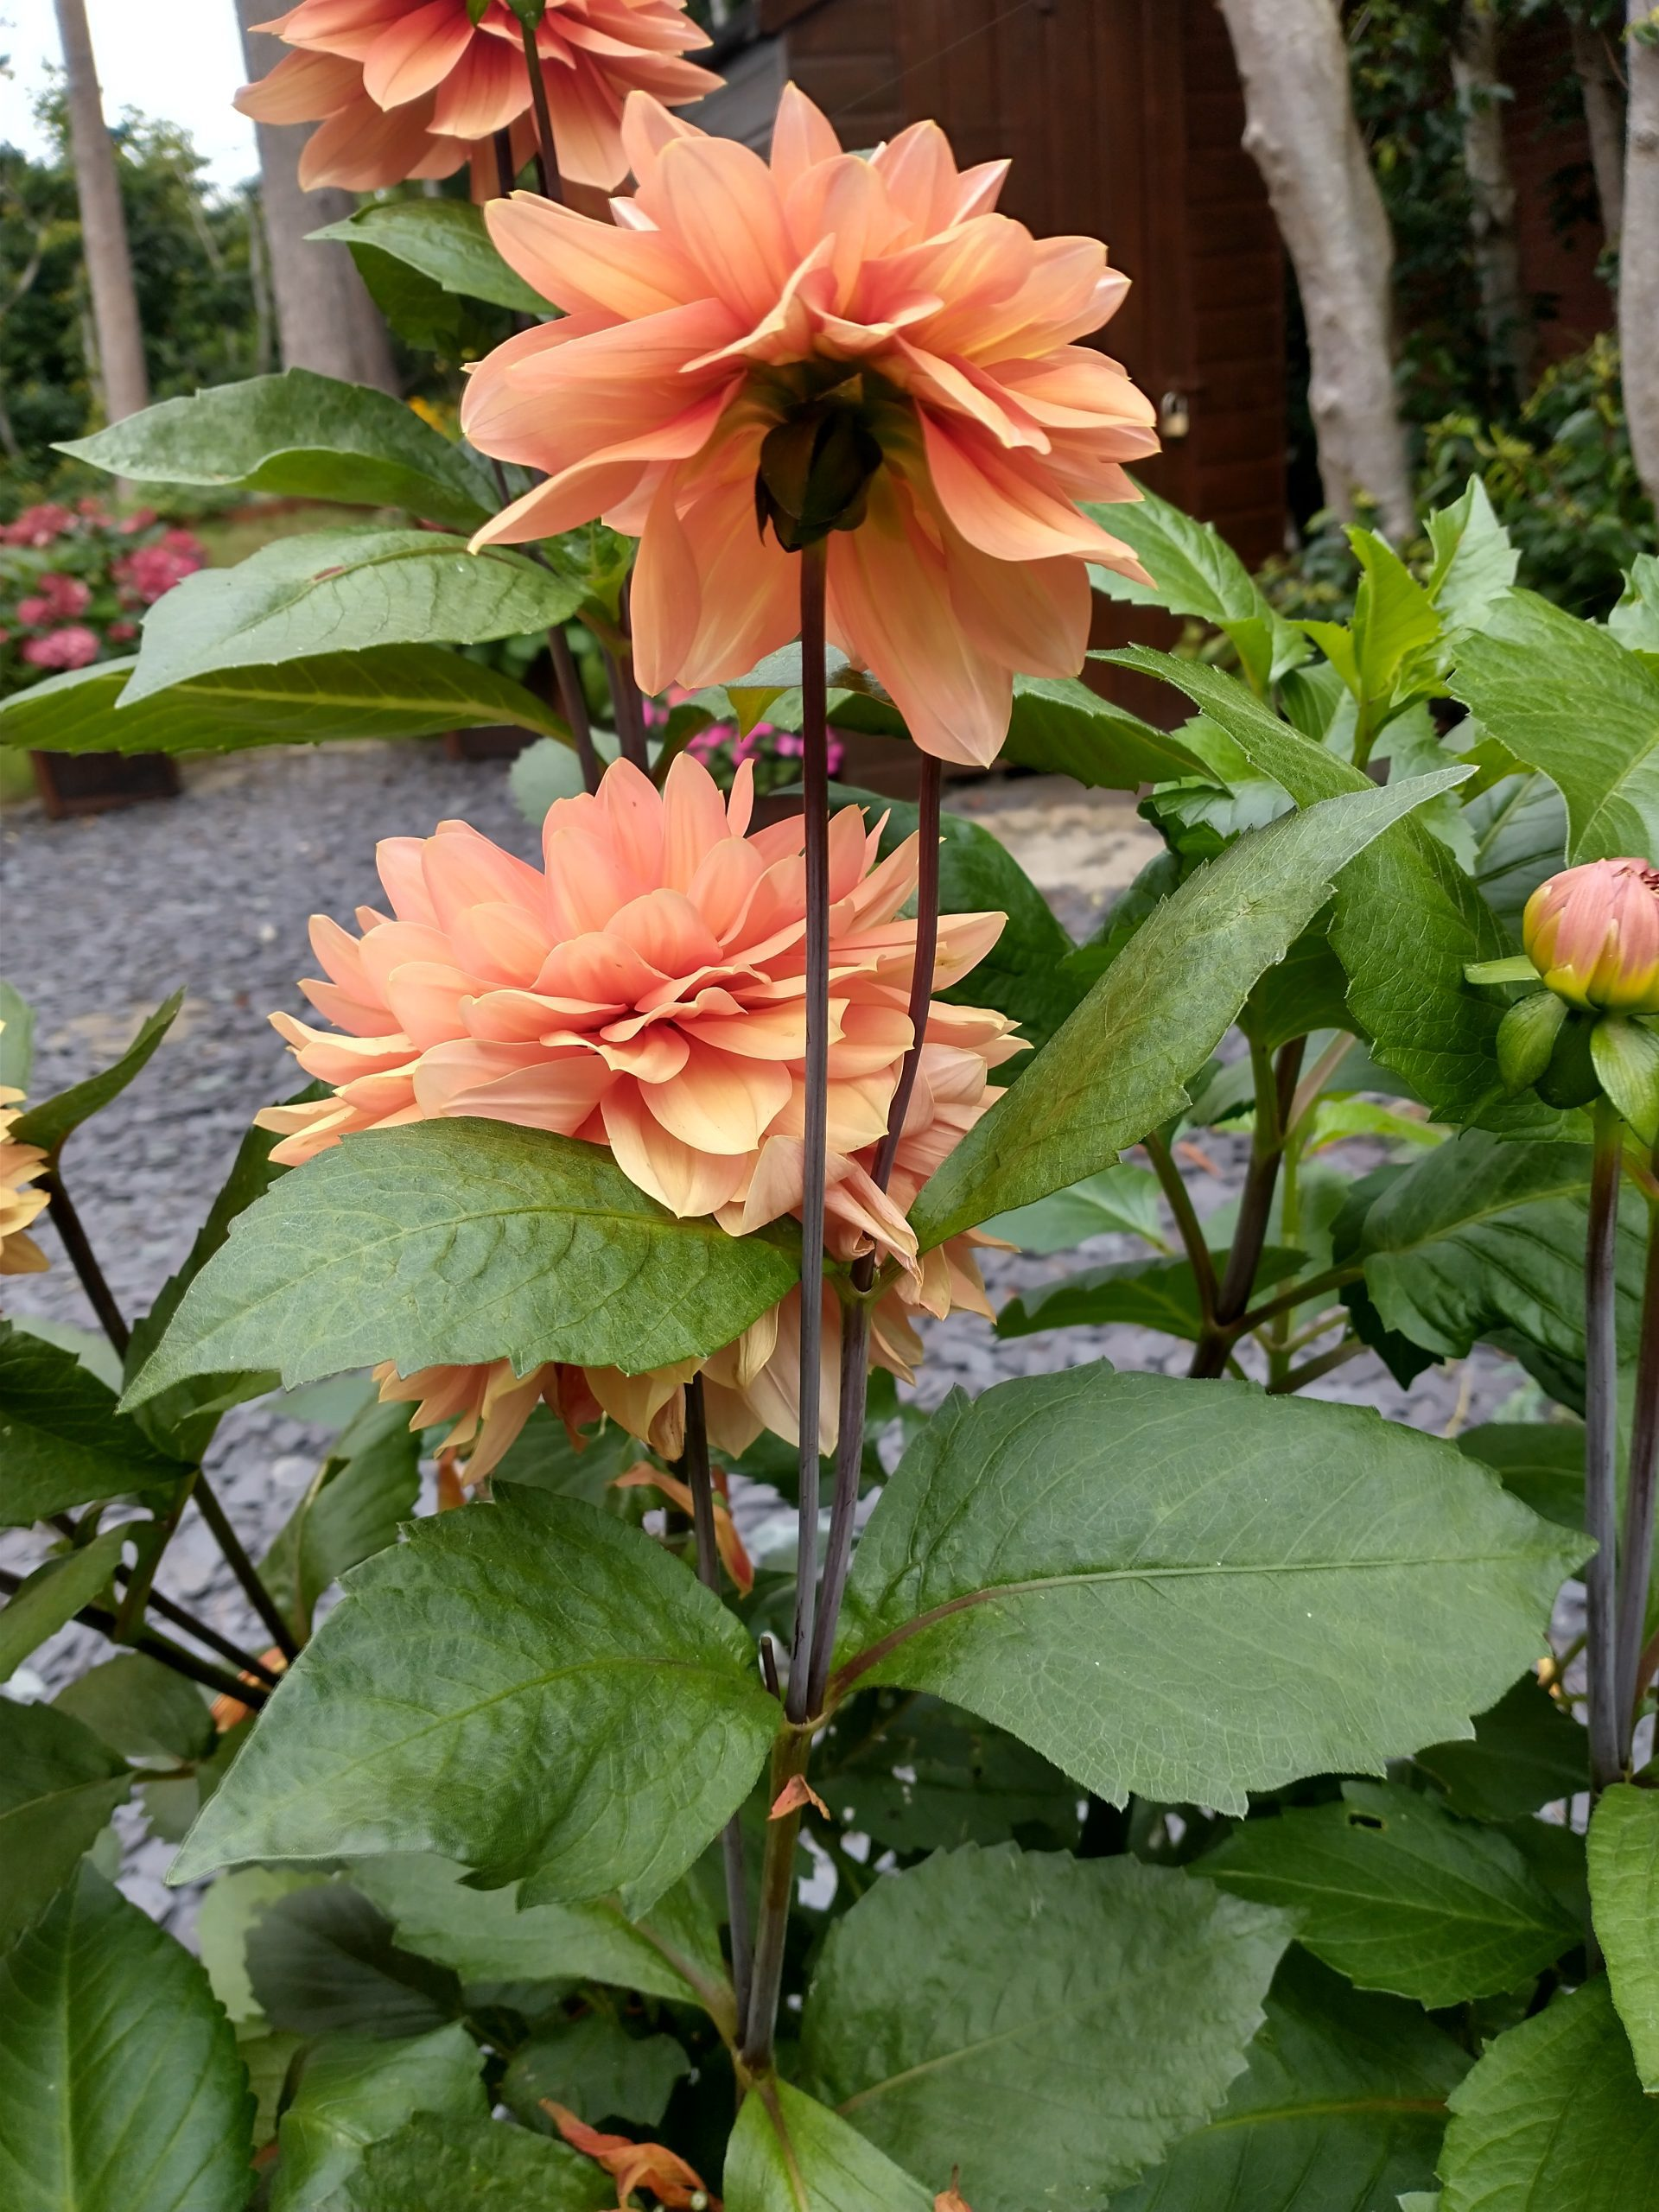 Smaller dahlia blooms on stems